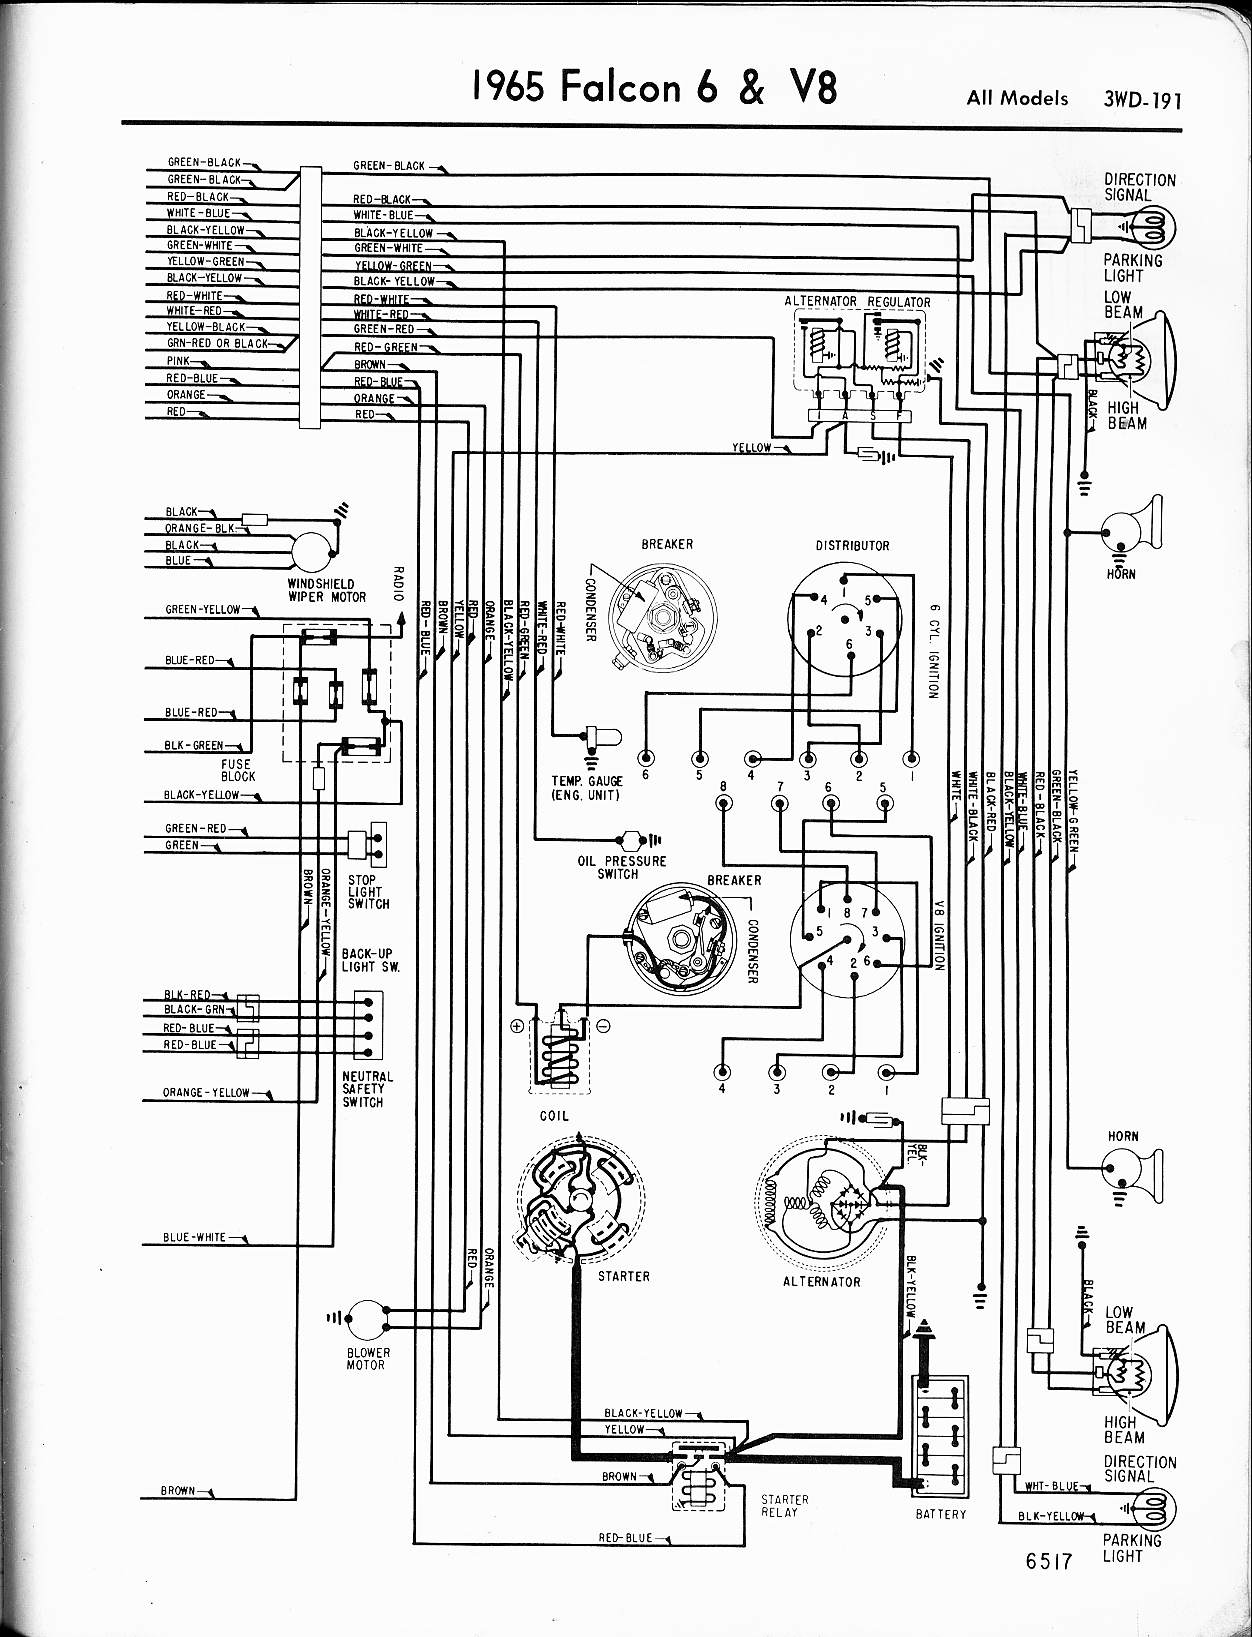 MWire5765 191 engine wire diagram for 65 falcon 65 falcon hot rod \u2022 wiring 1965 ford mustang wiring diagrams at mifinder.co